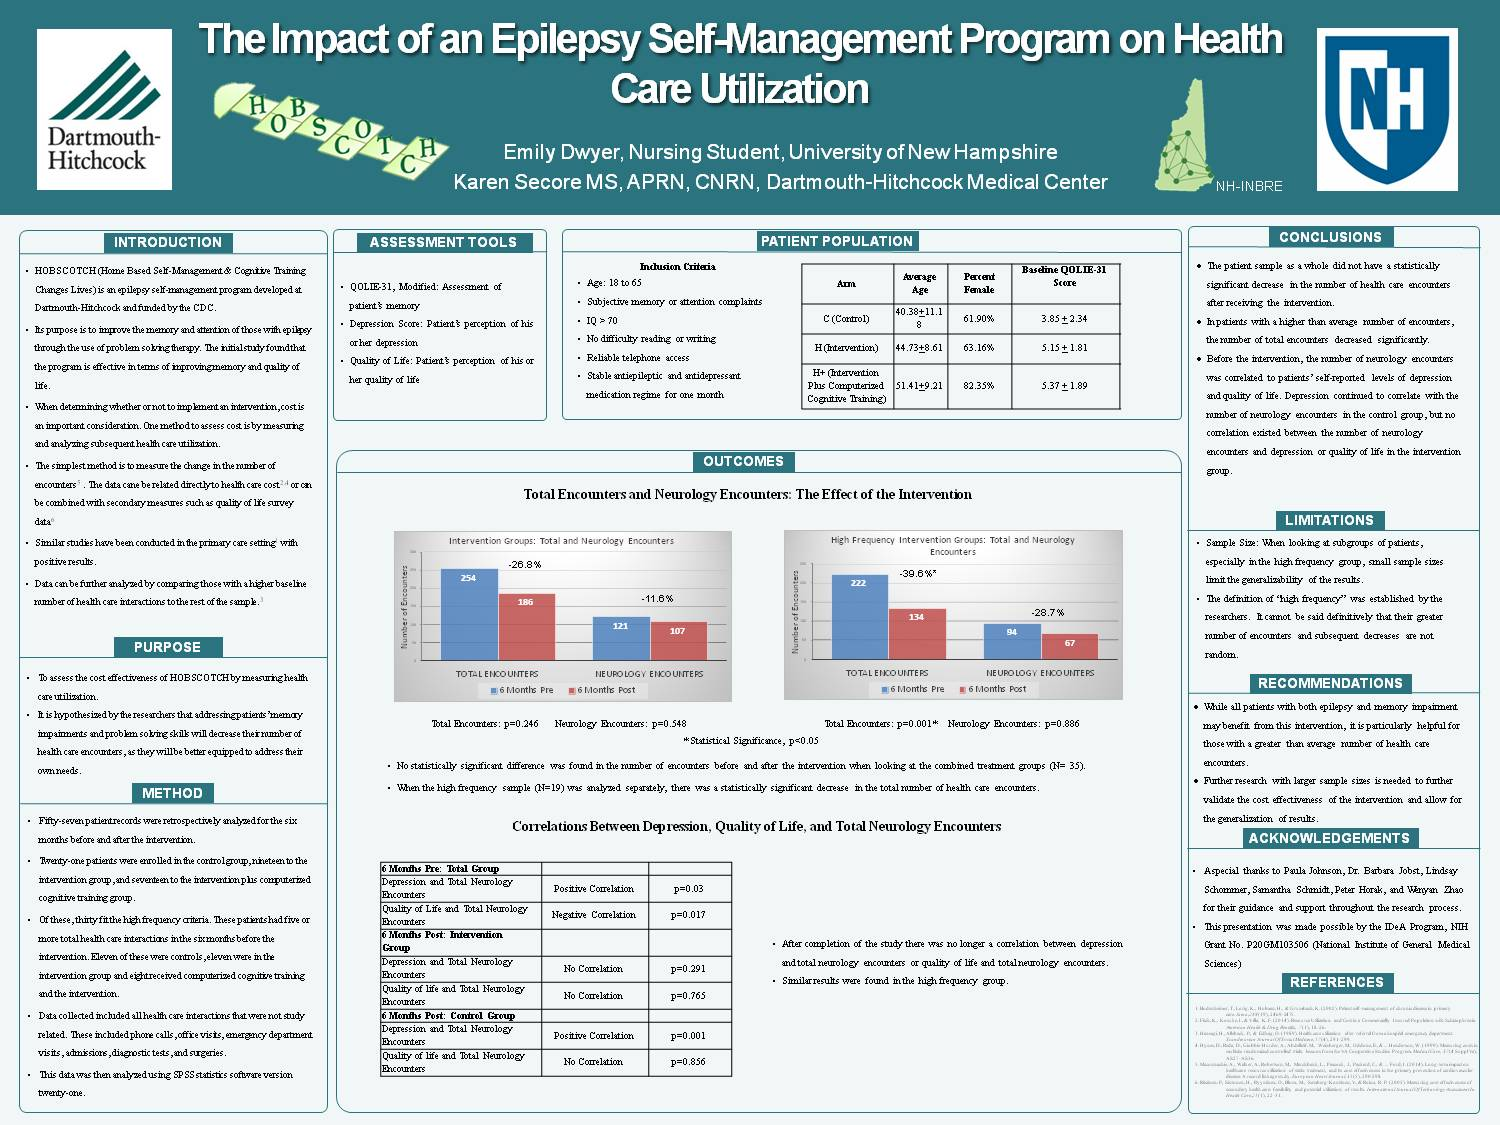 The Impact Of An Epilepsy Self-Management Program On Health Care Utilization by egm98